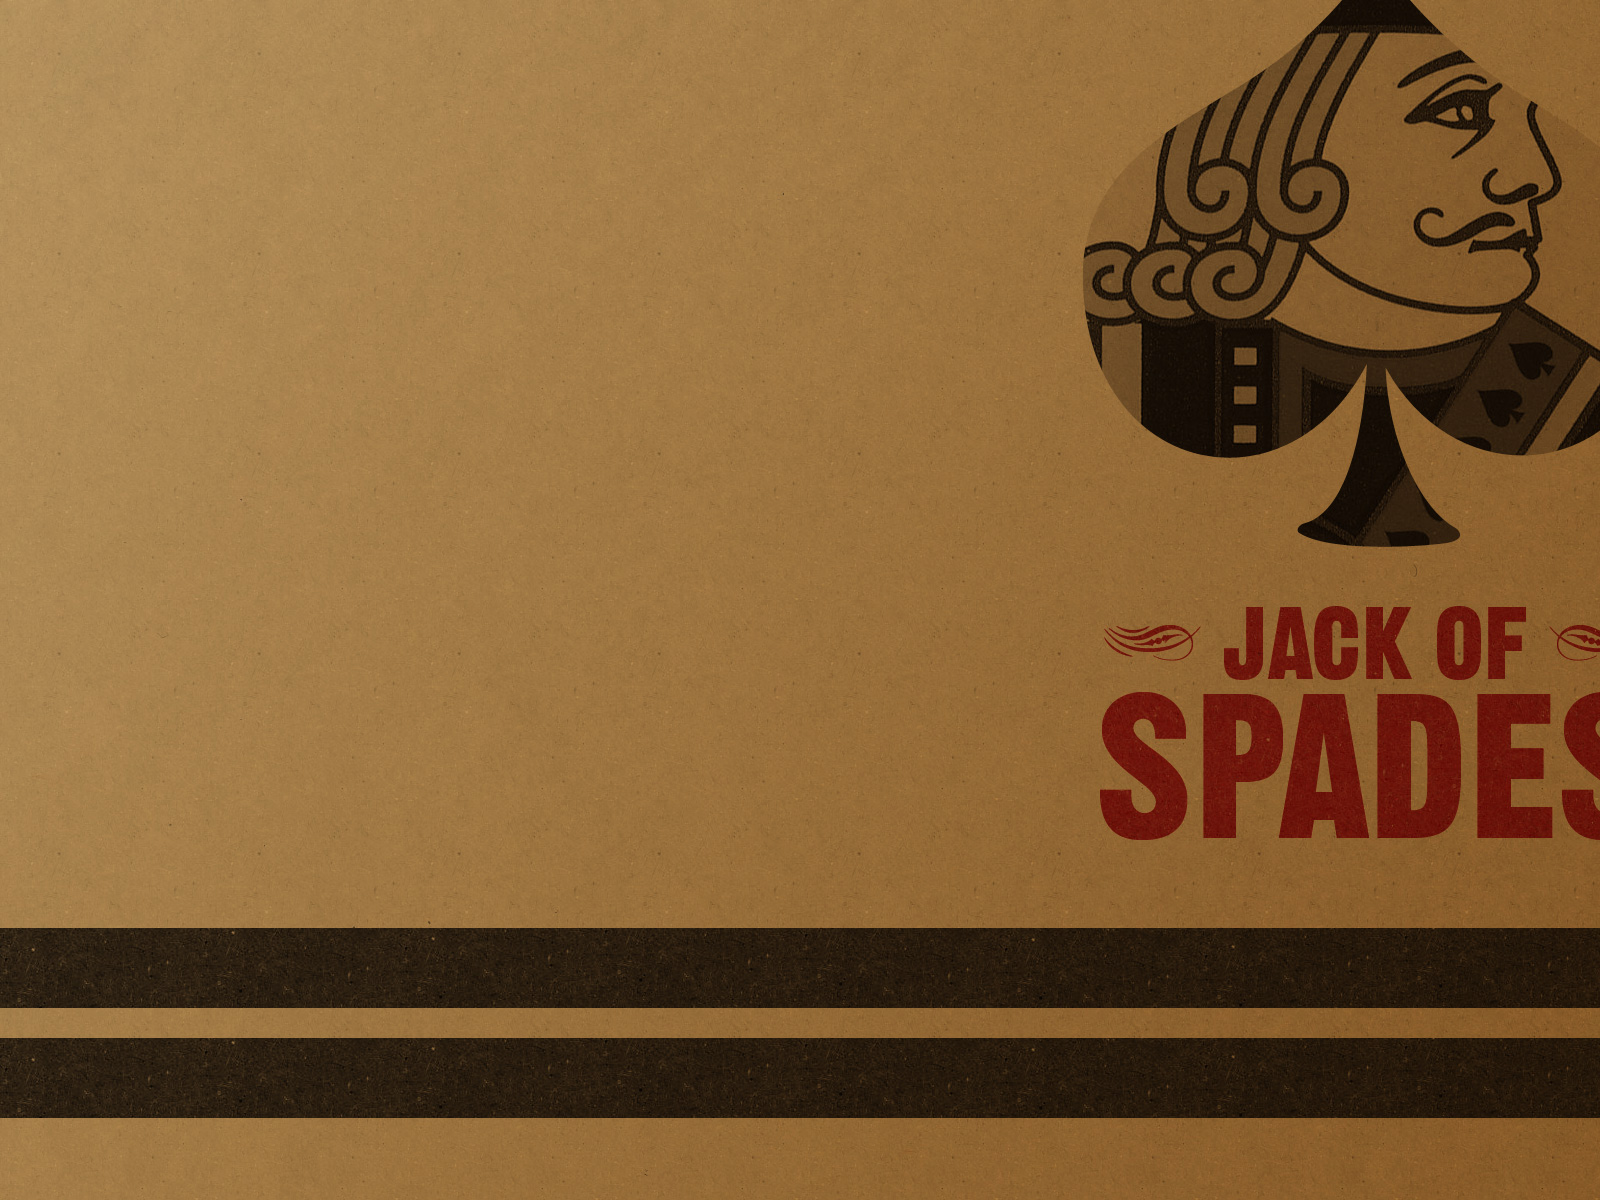 1500x500 Vintage Jack Of Spades Twitter Header Photo